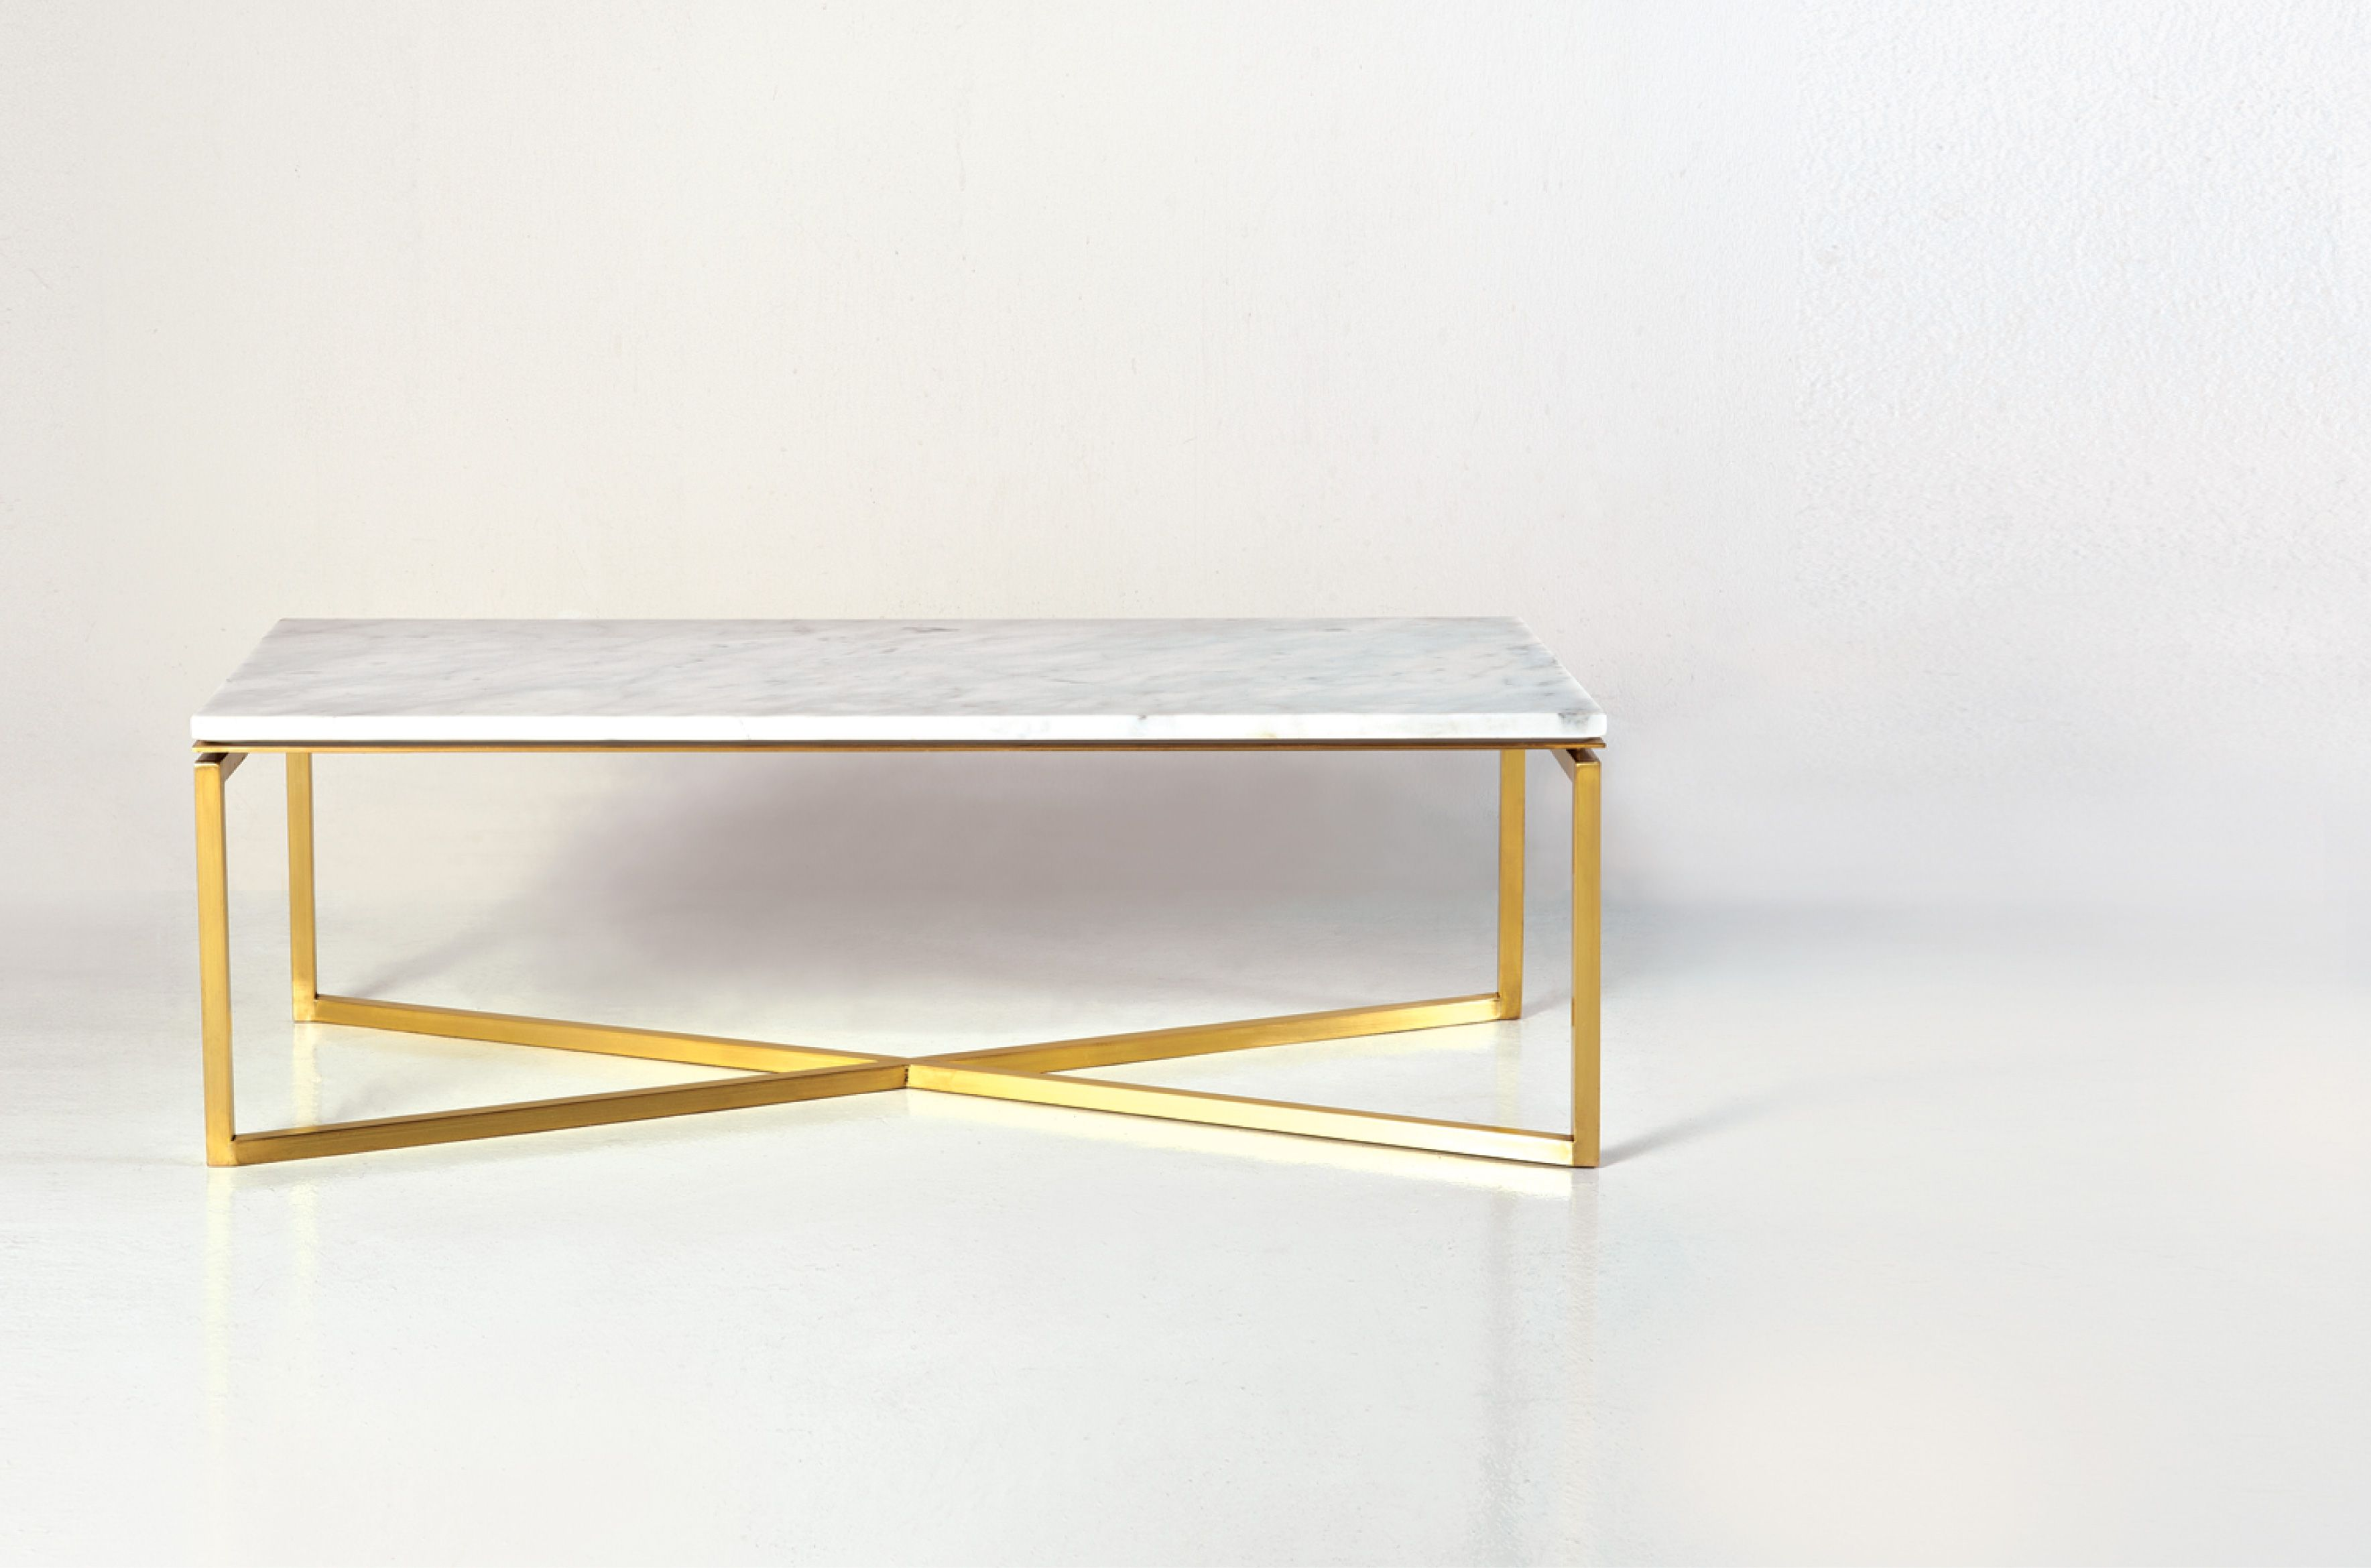 Baguette Coffee Table Br Leg In Gold Finish And White Carrara Marble Top Arc Living